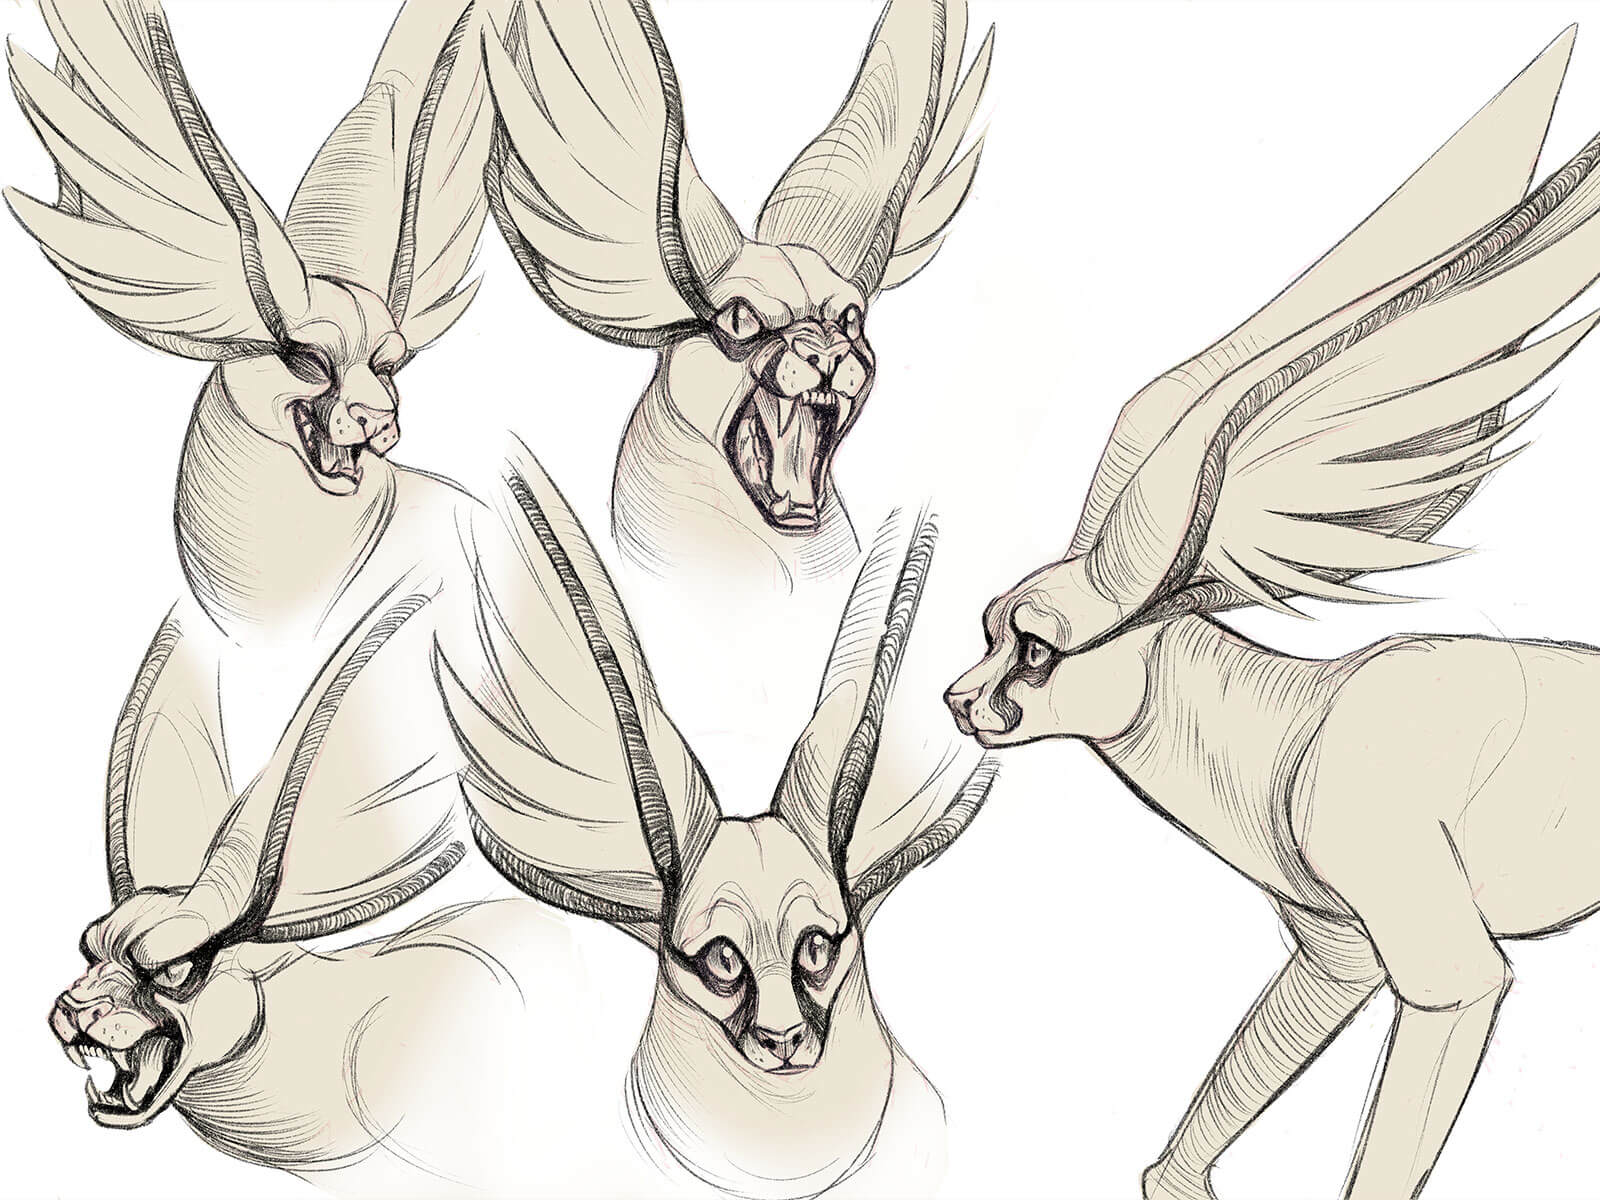 Multiple close-up views of the facial expressions of a caracal-like beast with enormous, wing-like ears.